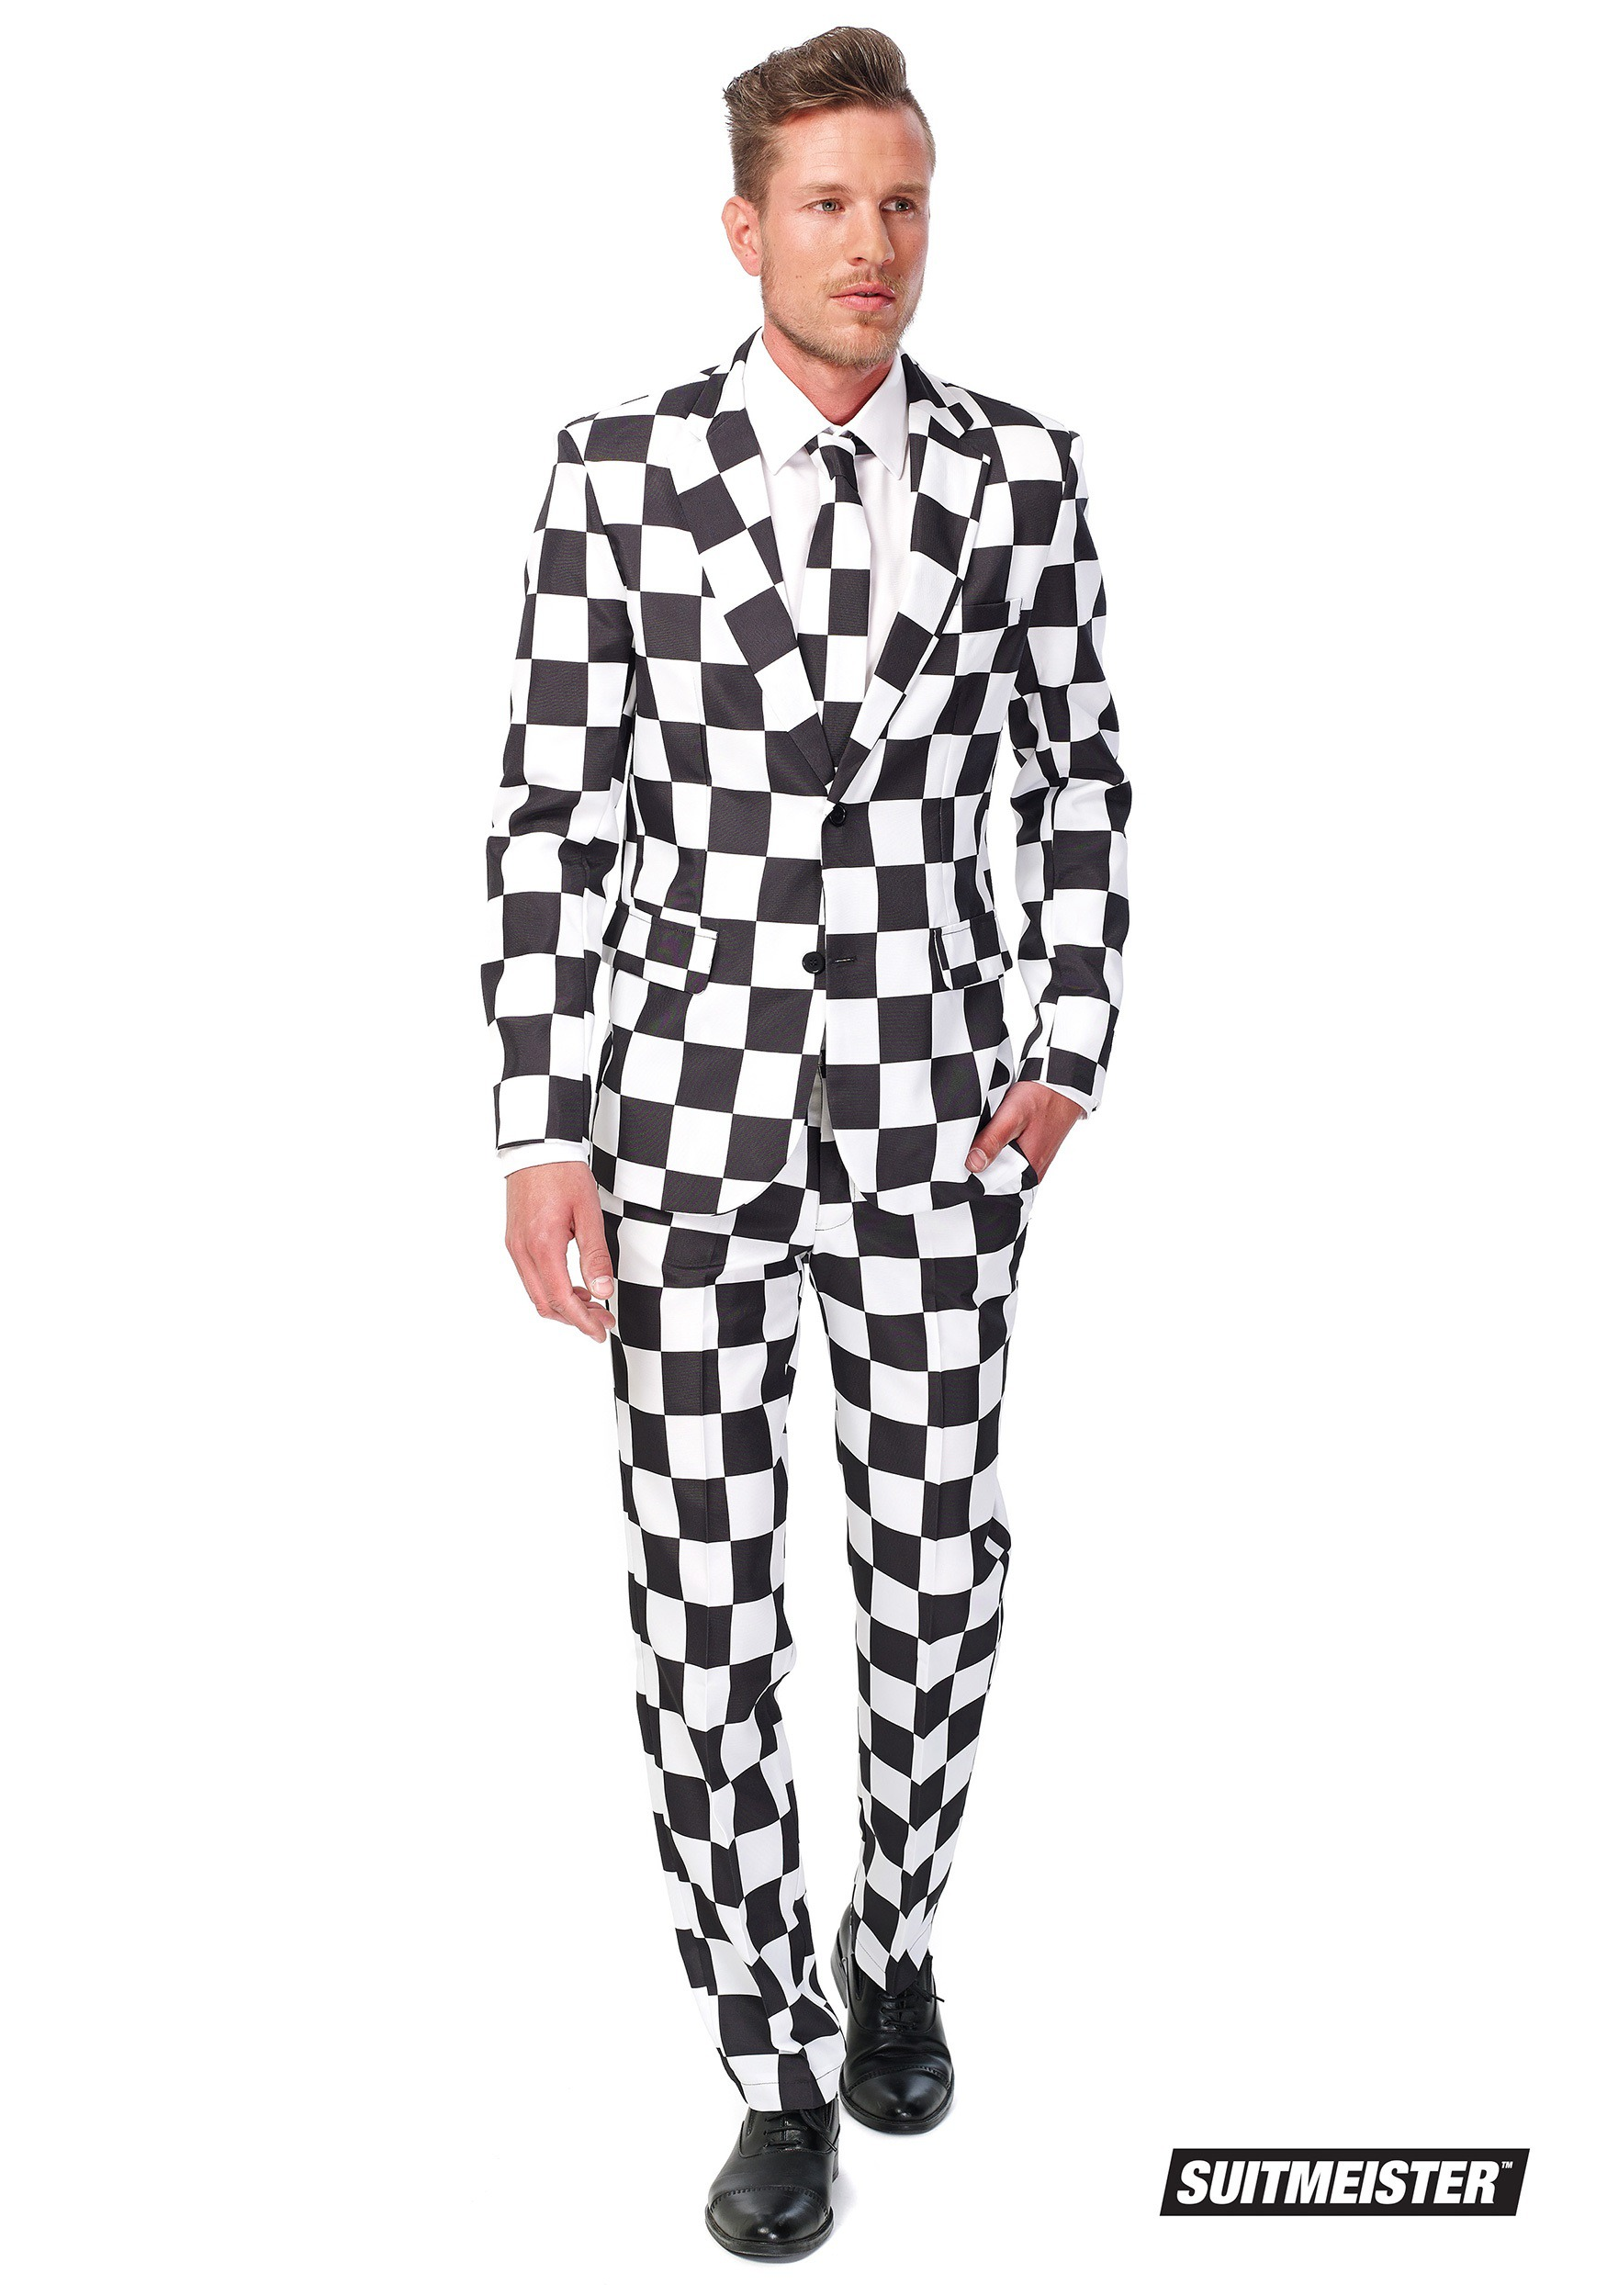 Men's Brocade Pant Set: White C-M SORRY TEMPORARILY OUT OF STOCK A traditional look, with sophisticated style, for today's well dressed man. % Brocade cotton with gold embroidered detail sets this suit apart with cultural distinction.